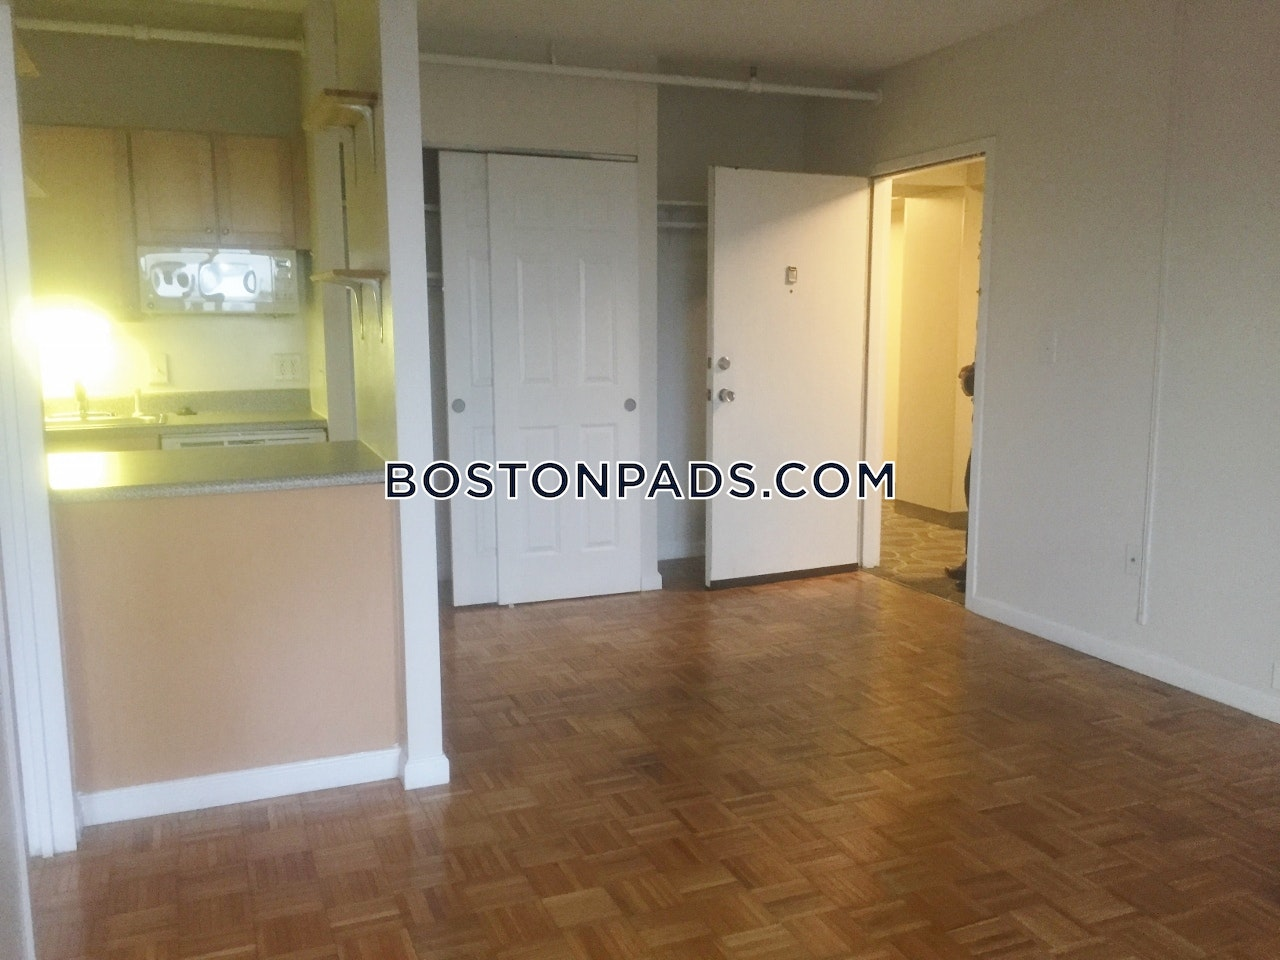 CAMBRIDGE - CENTRAL SQUARE/CAMBRIDGEPORT - $2,725